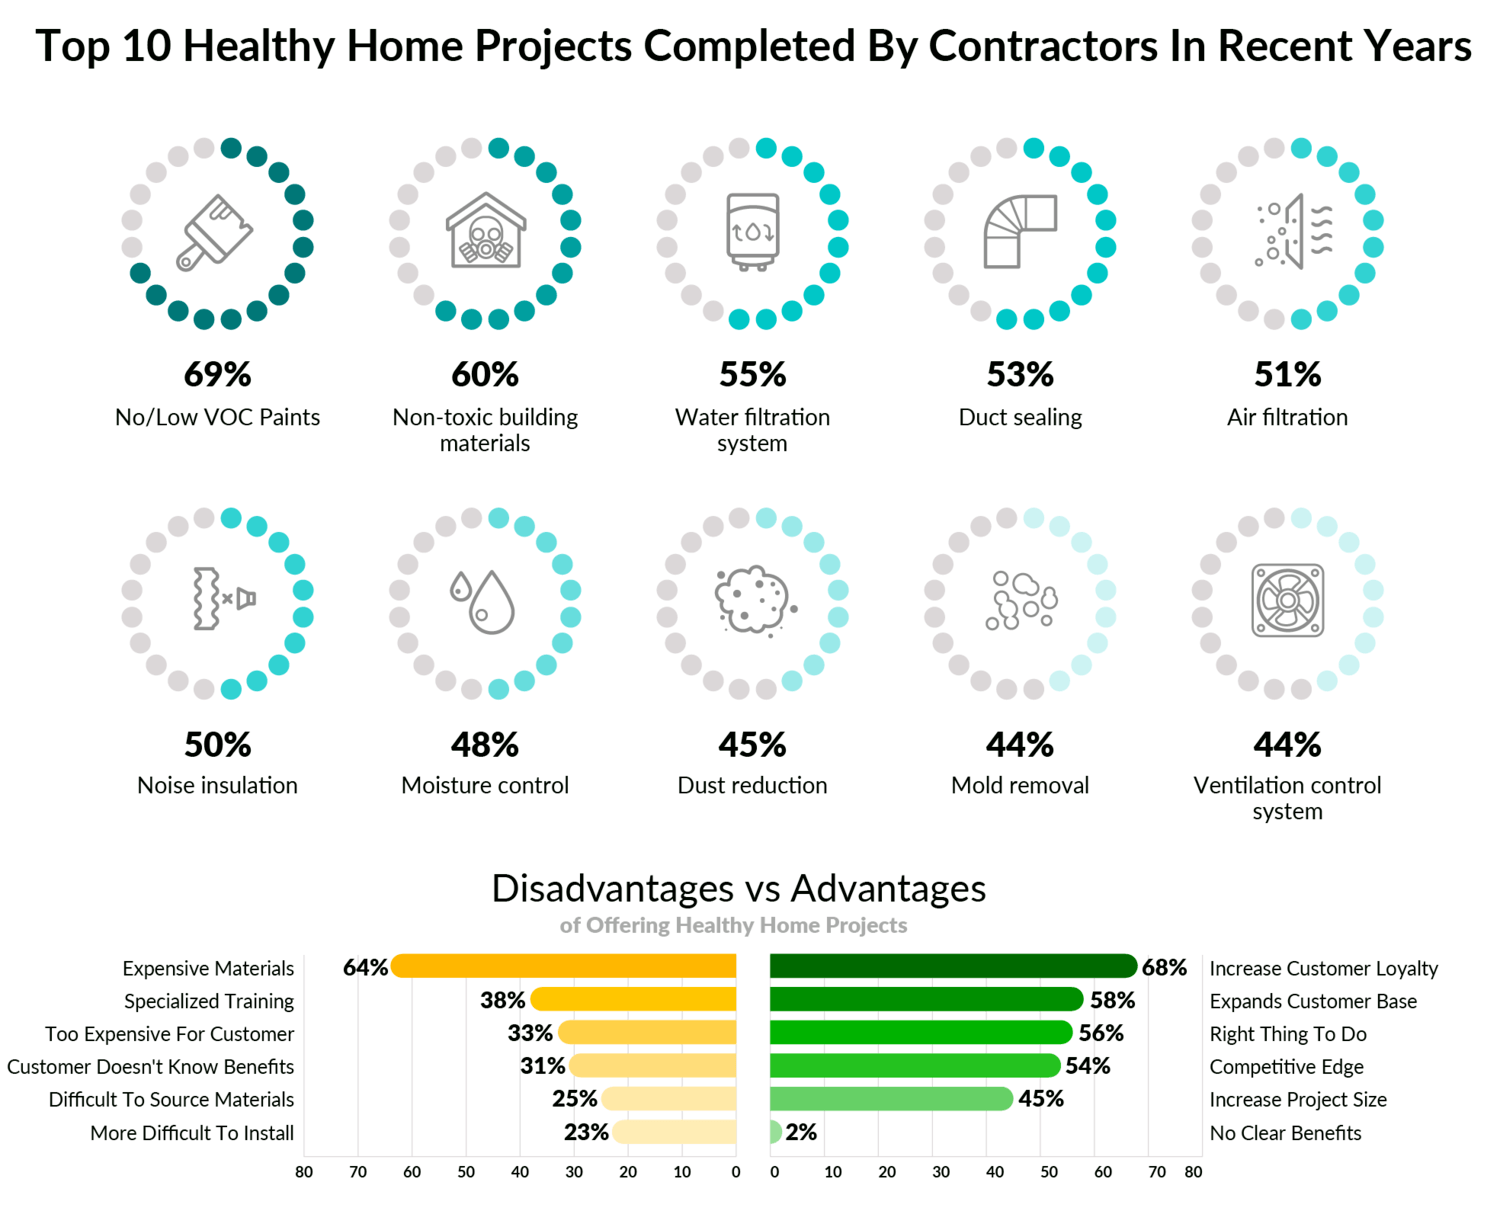 A Healthy Home: What It Means to Homeowners and Contractors